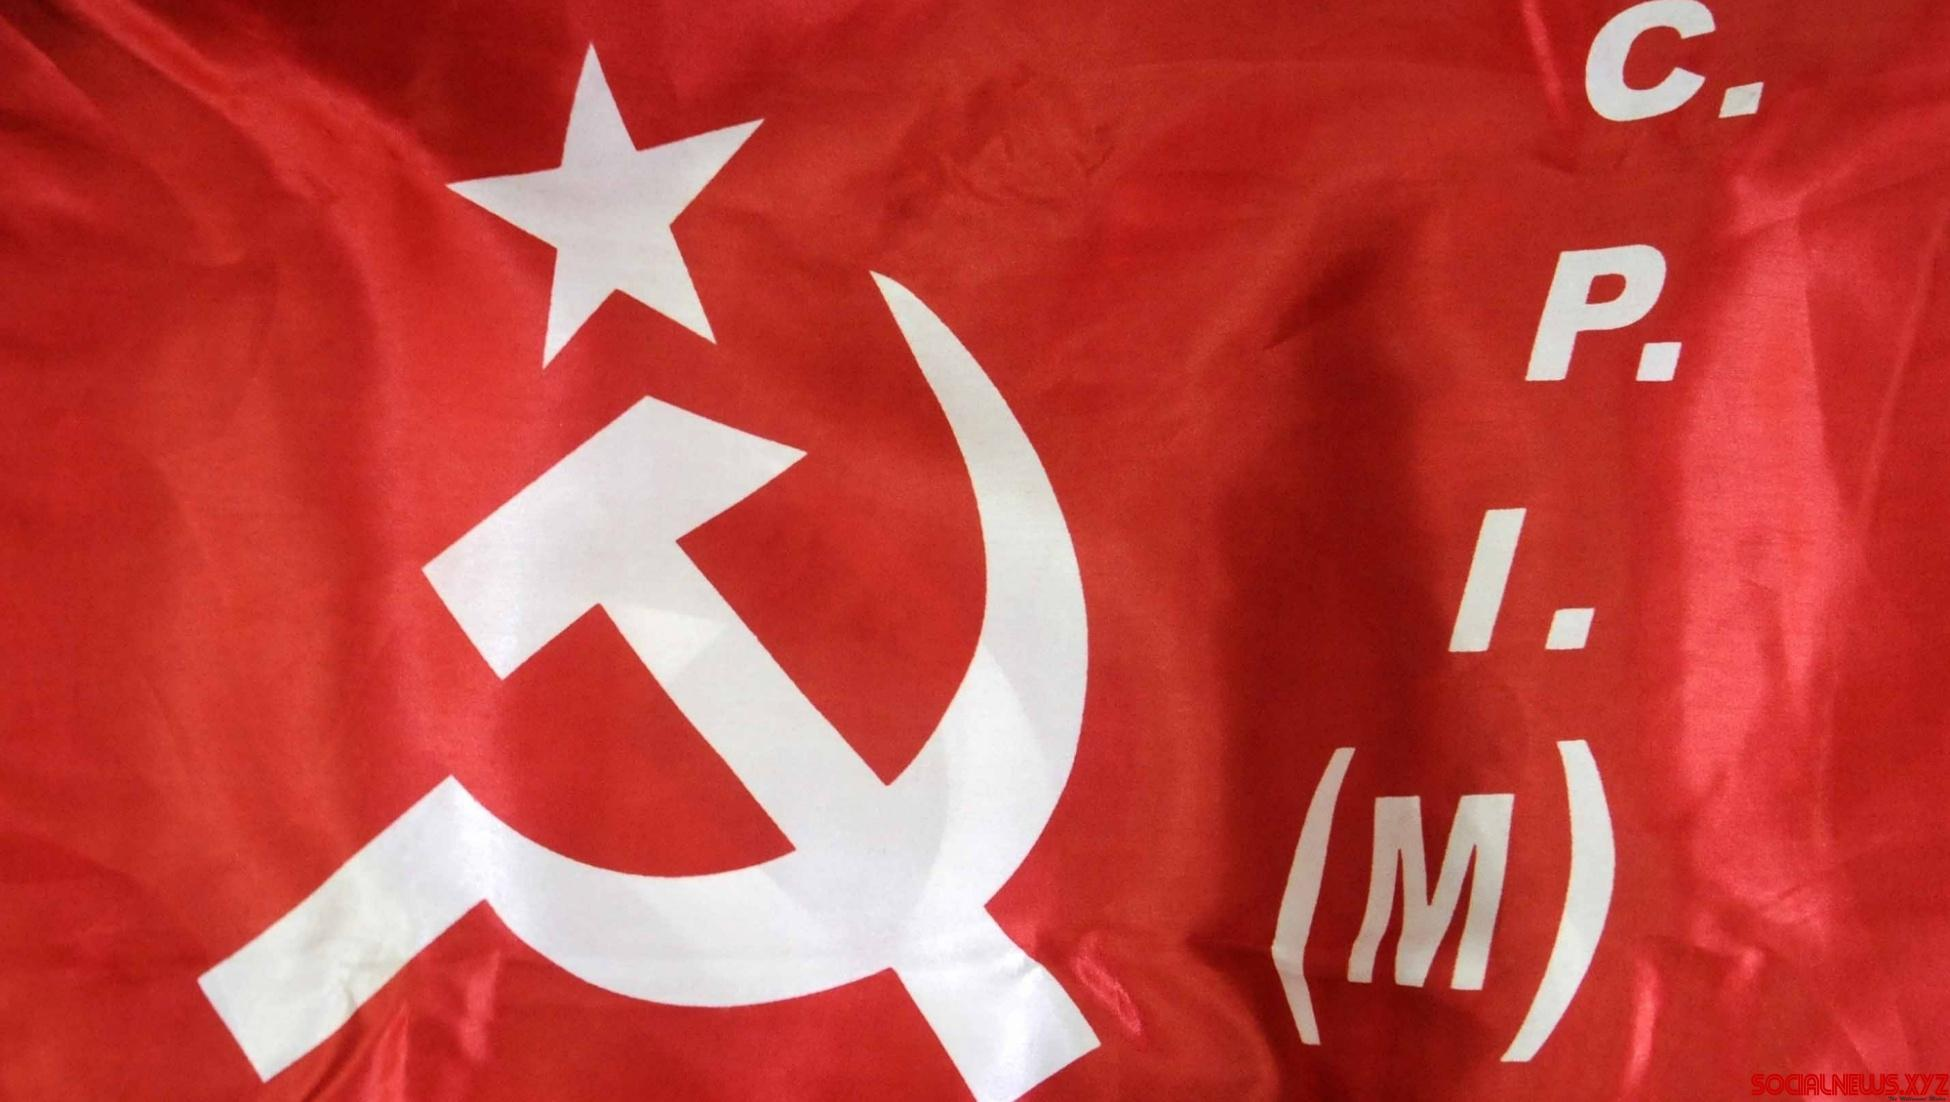 CPI-M admits to losing support among 'basic classes'